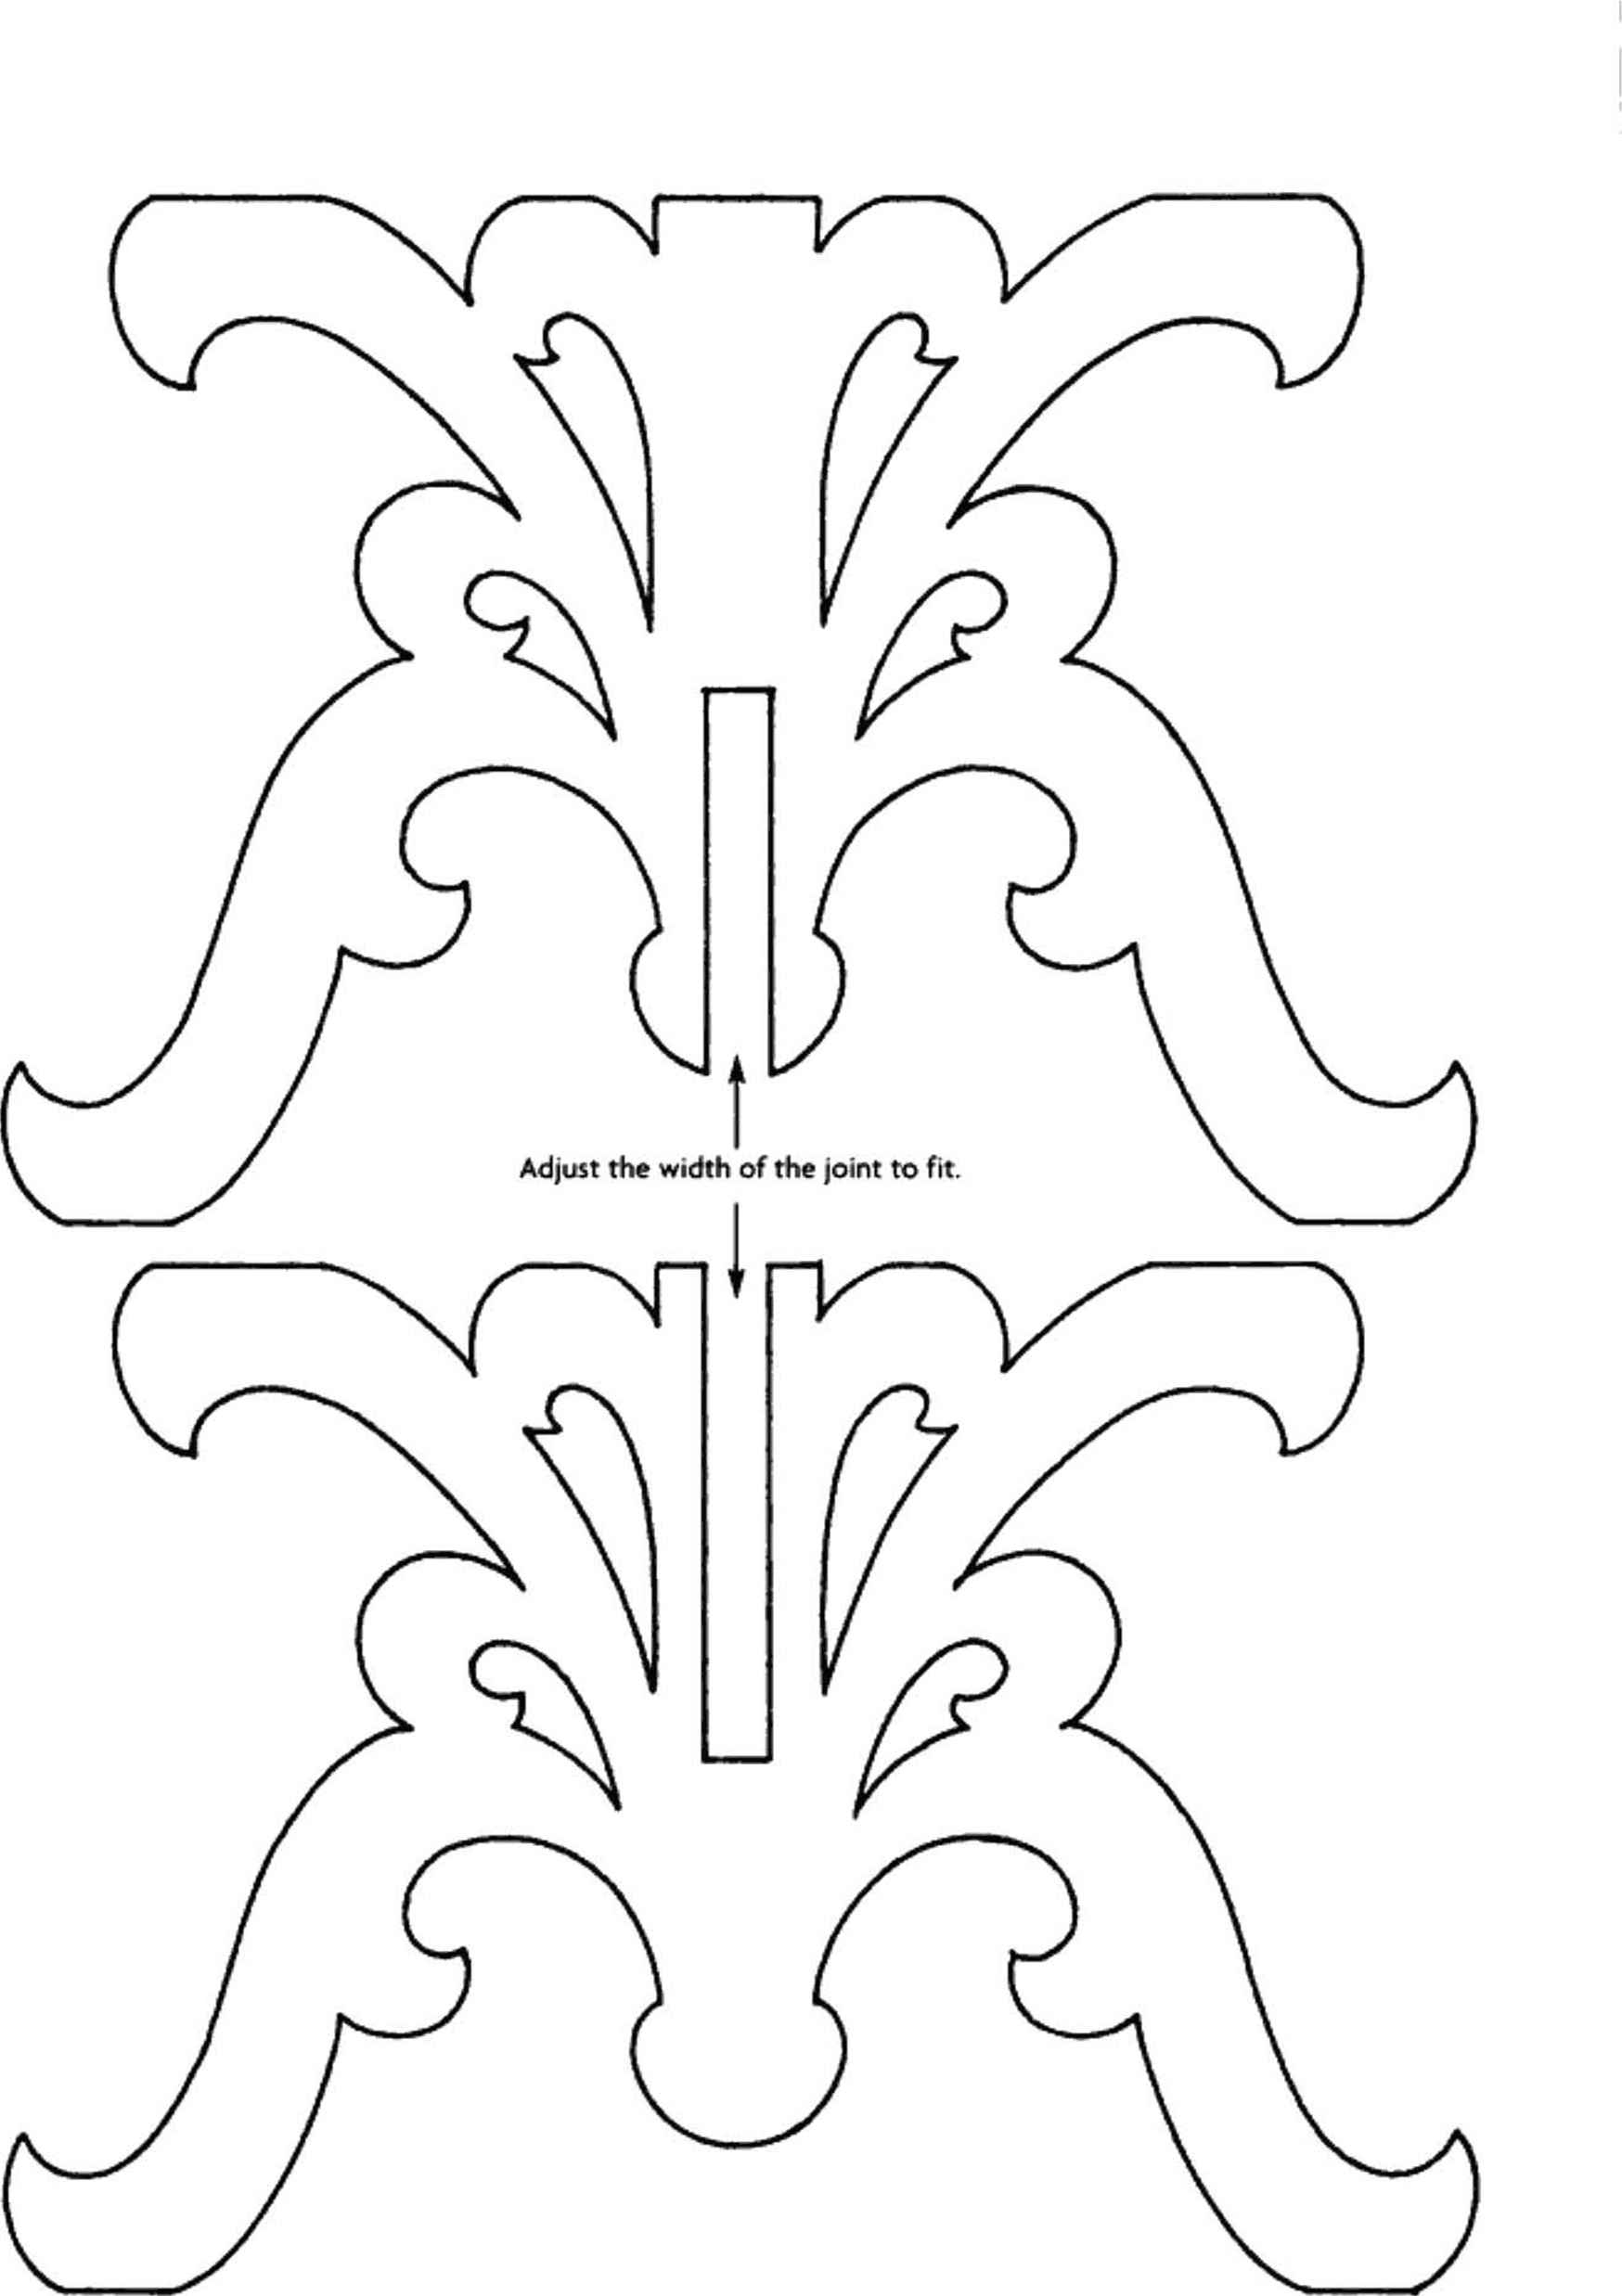 Scroll Saw Patterns Free Download Hq67 | Jornalagora - Scroll Saw Patterns Free Printable